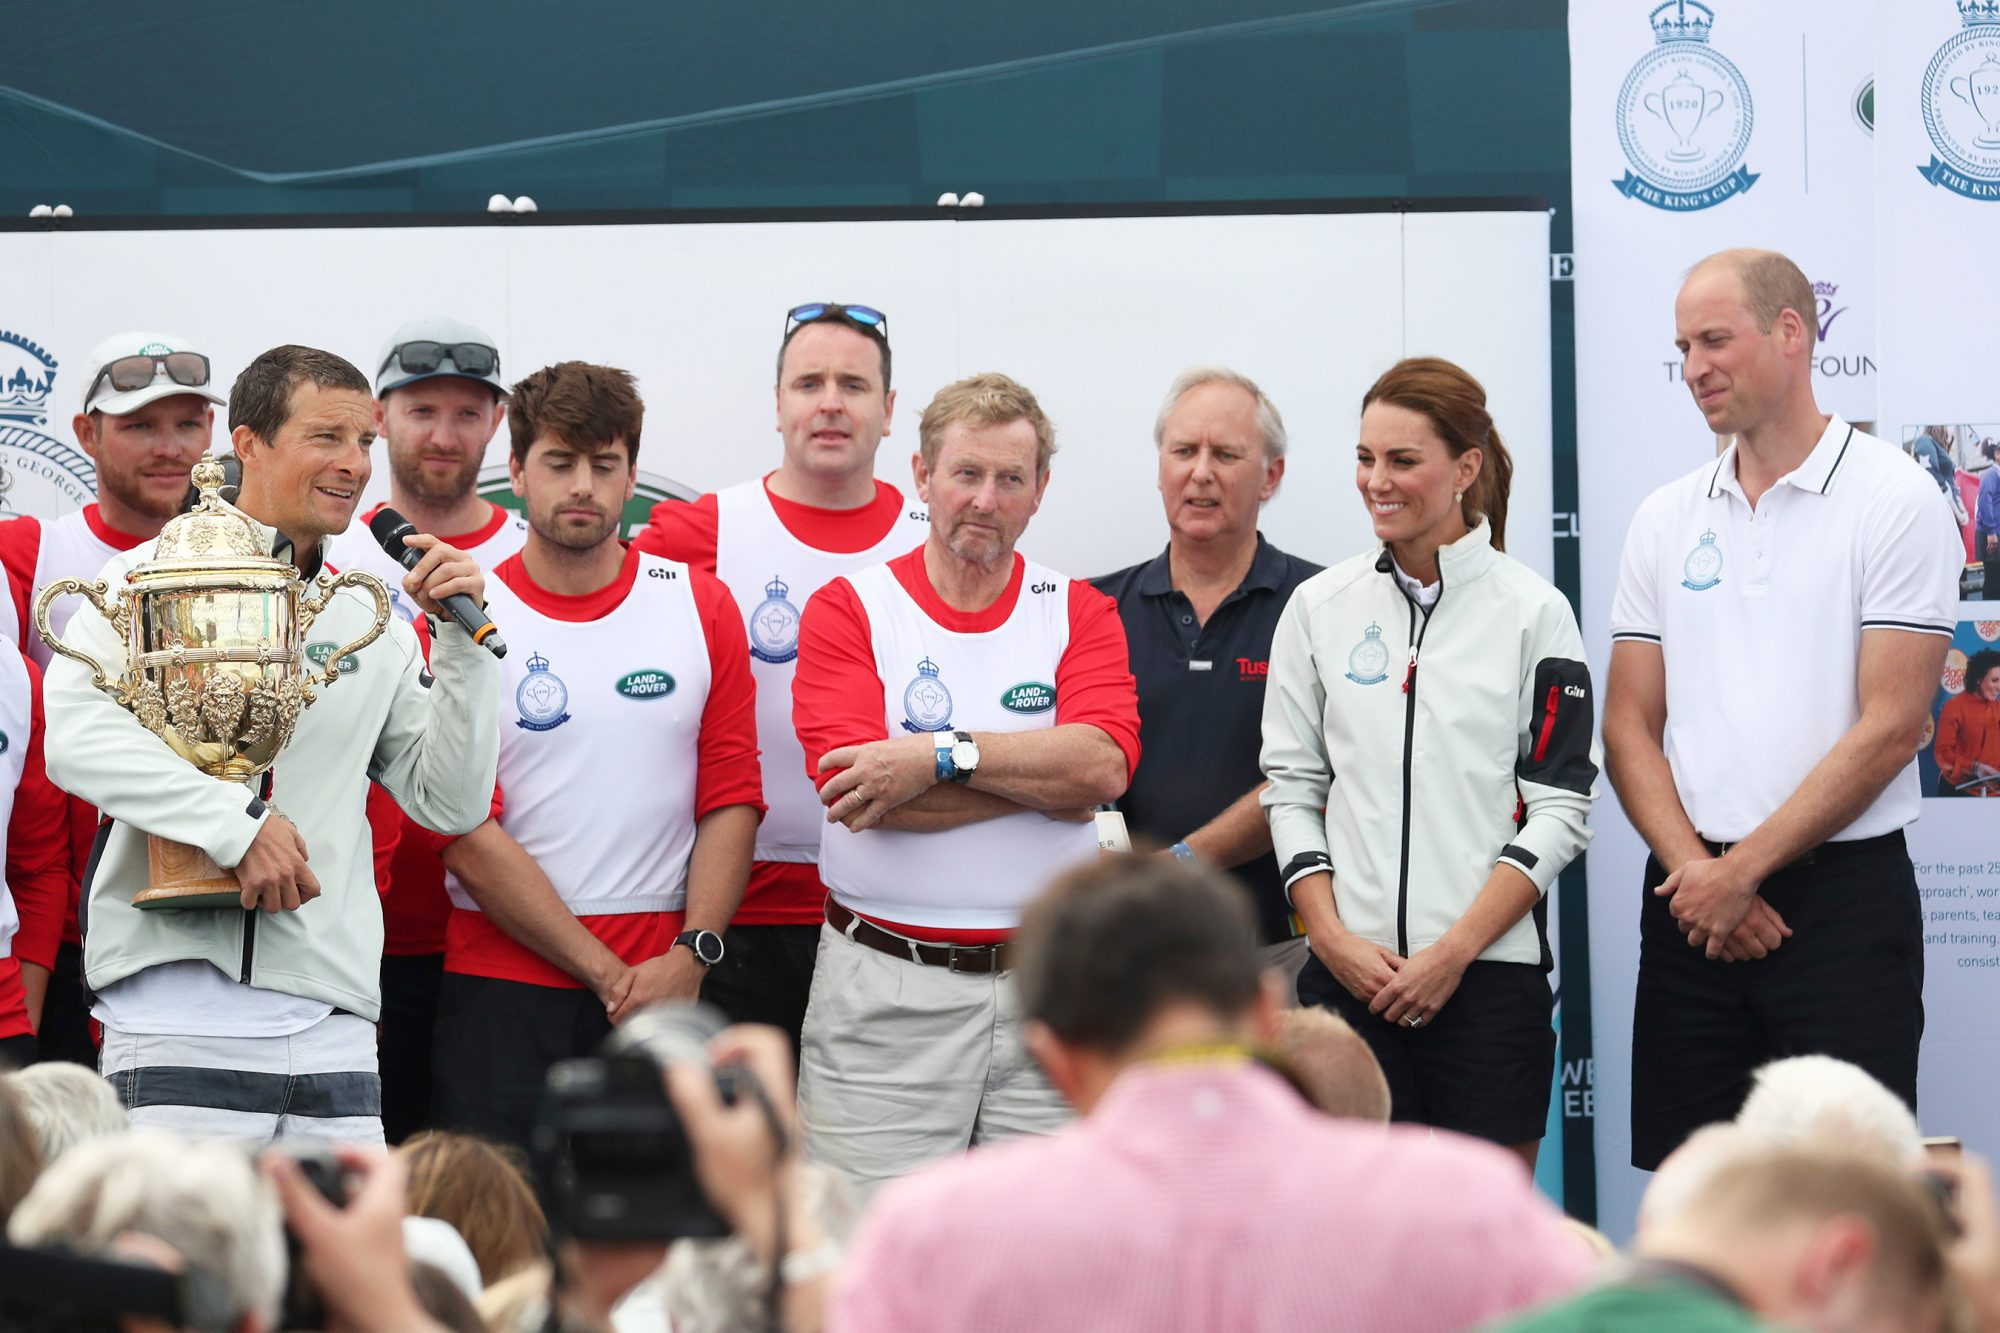 Duke of Cambridge and The Duchess Catherine William King's Cup Regatta